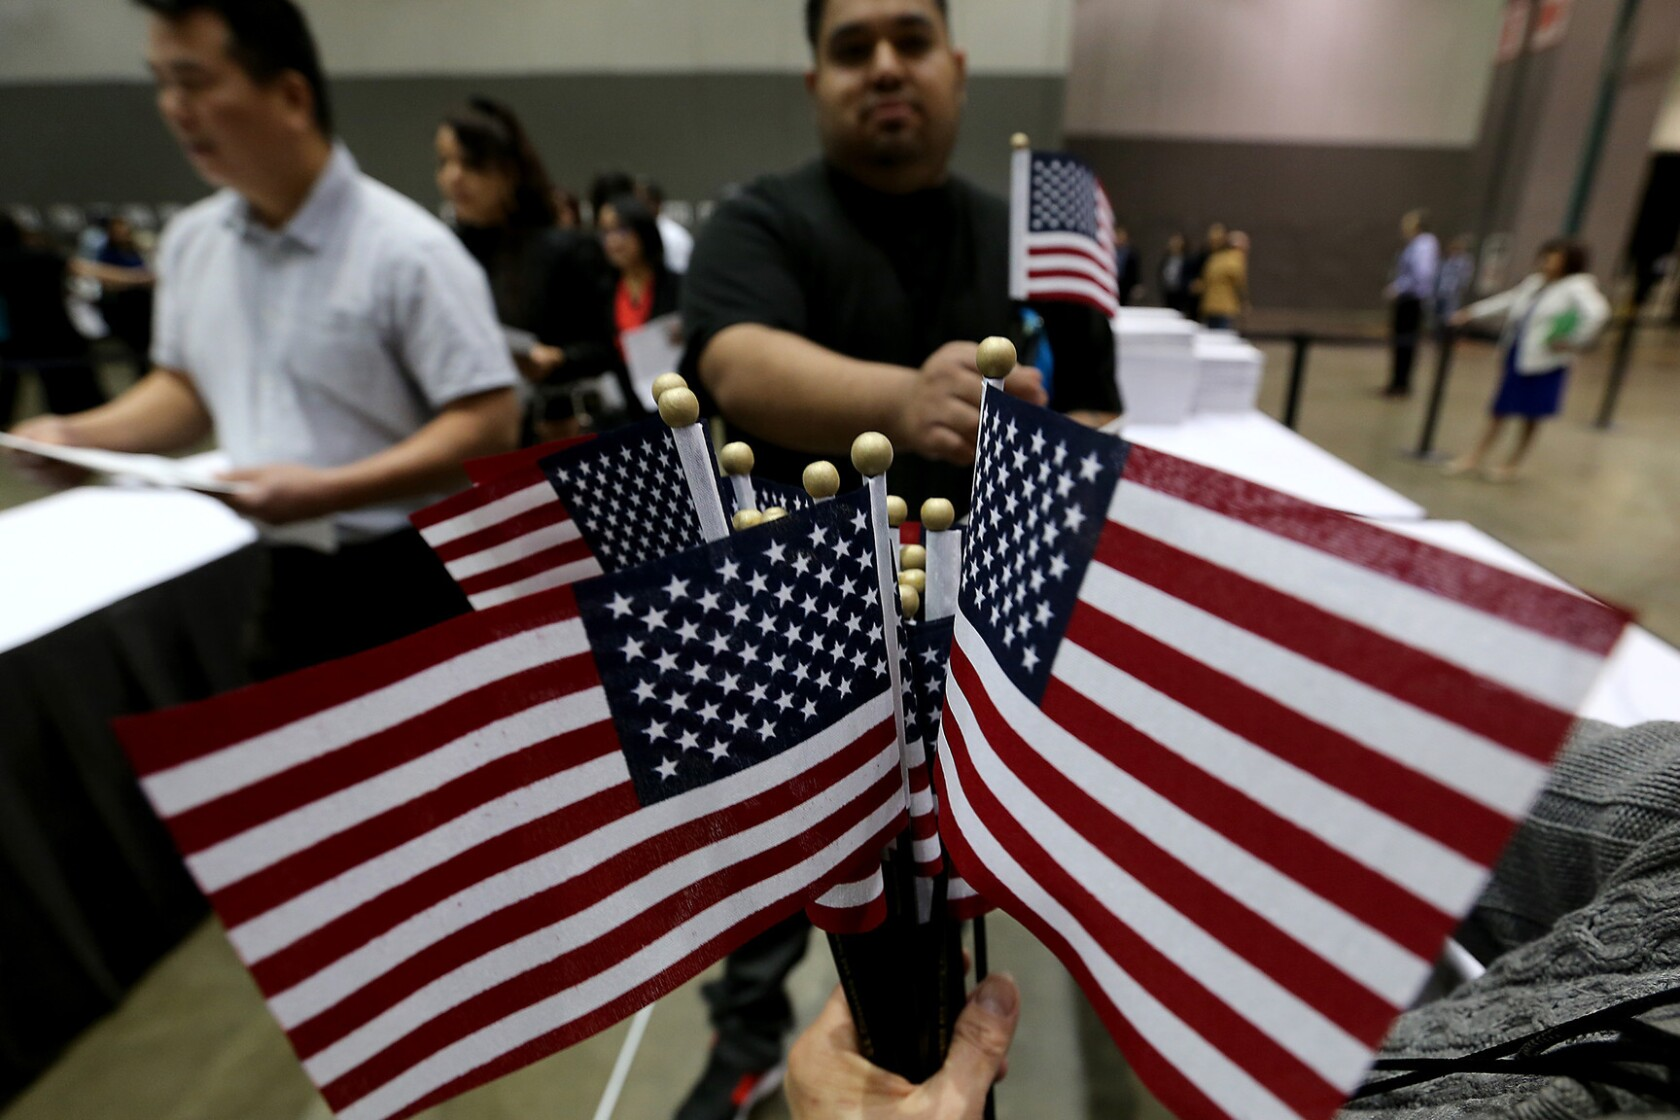 I'm so happy today': Thousands attend L A  naturalization ceremony